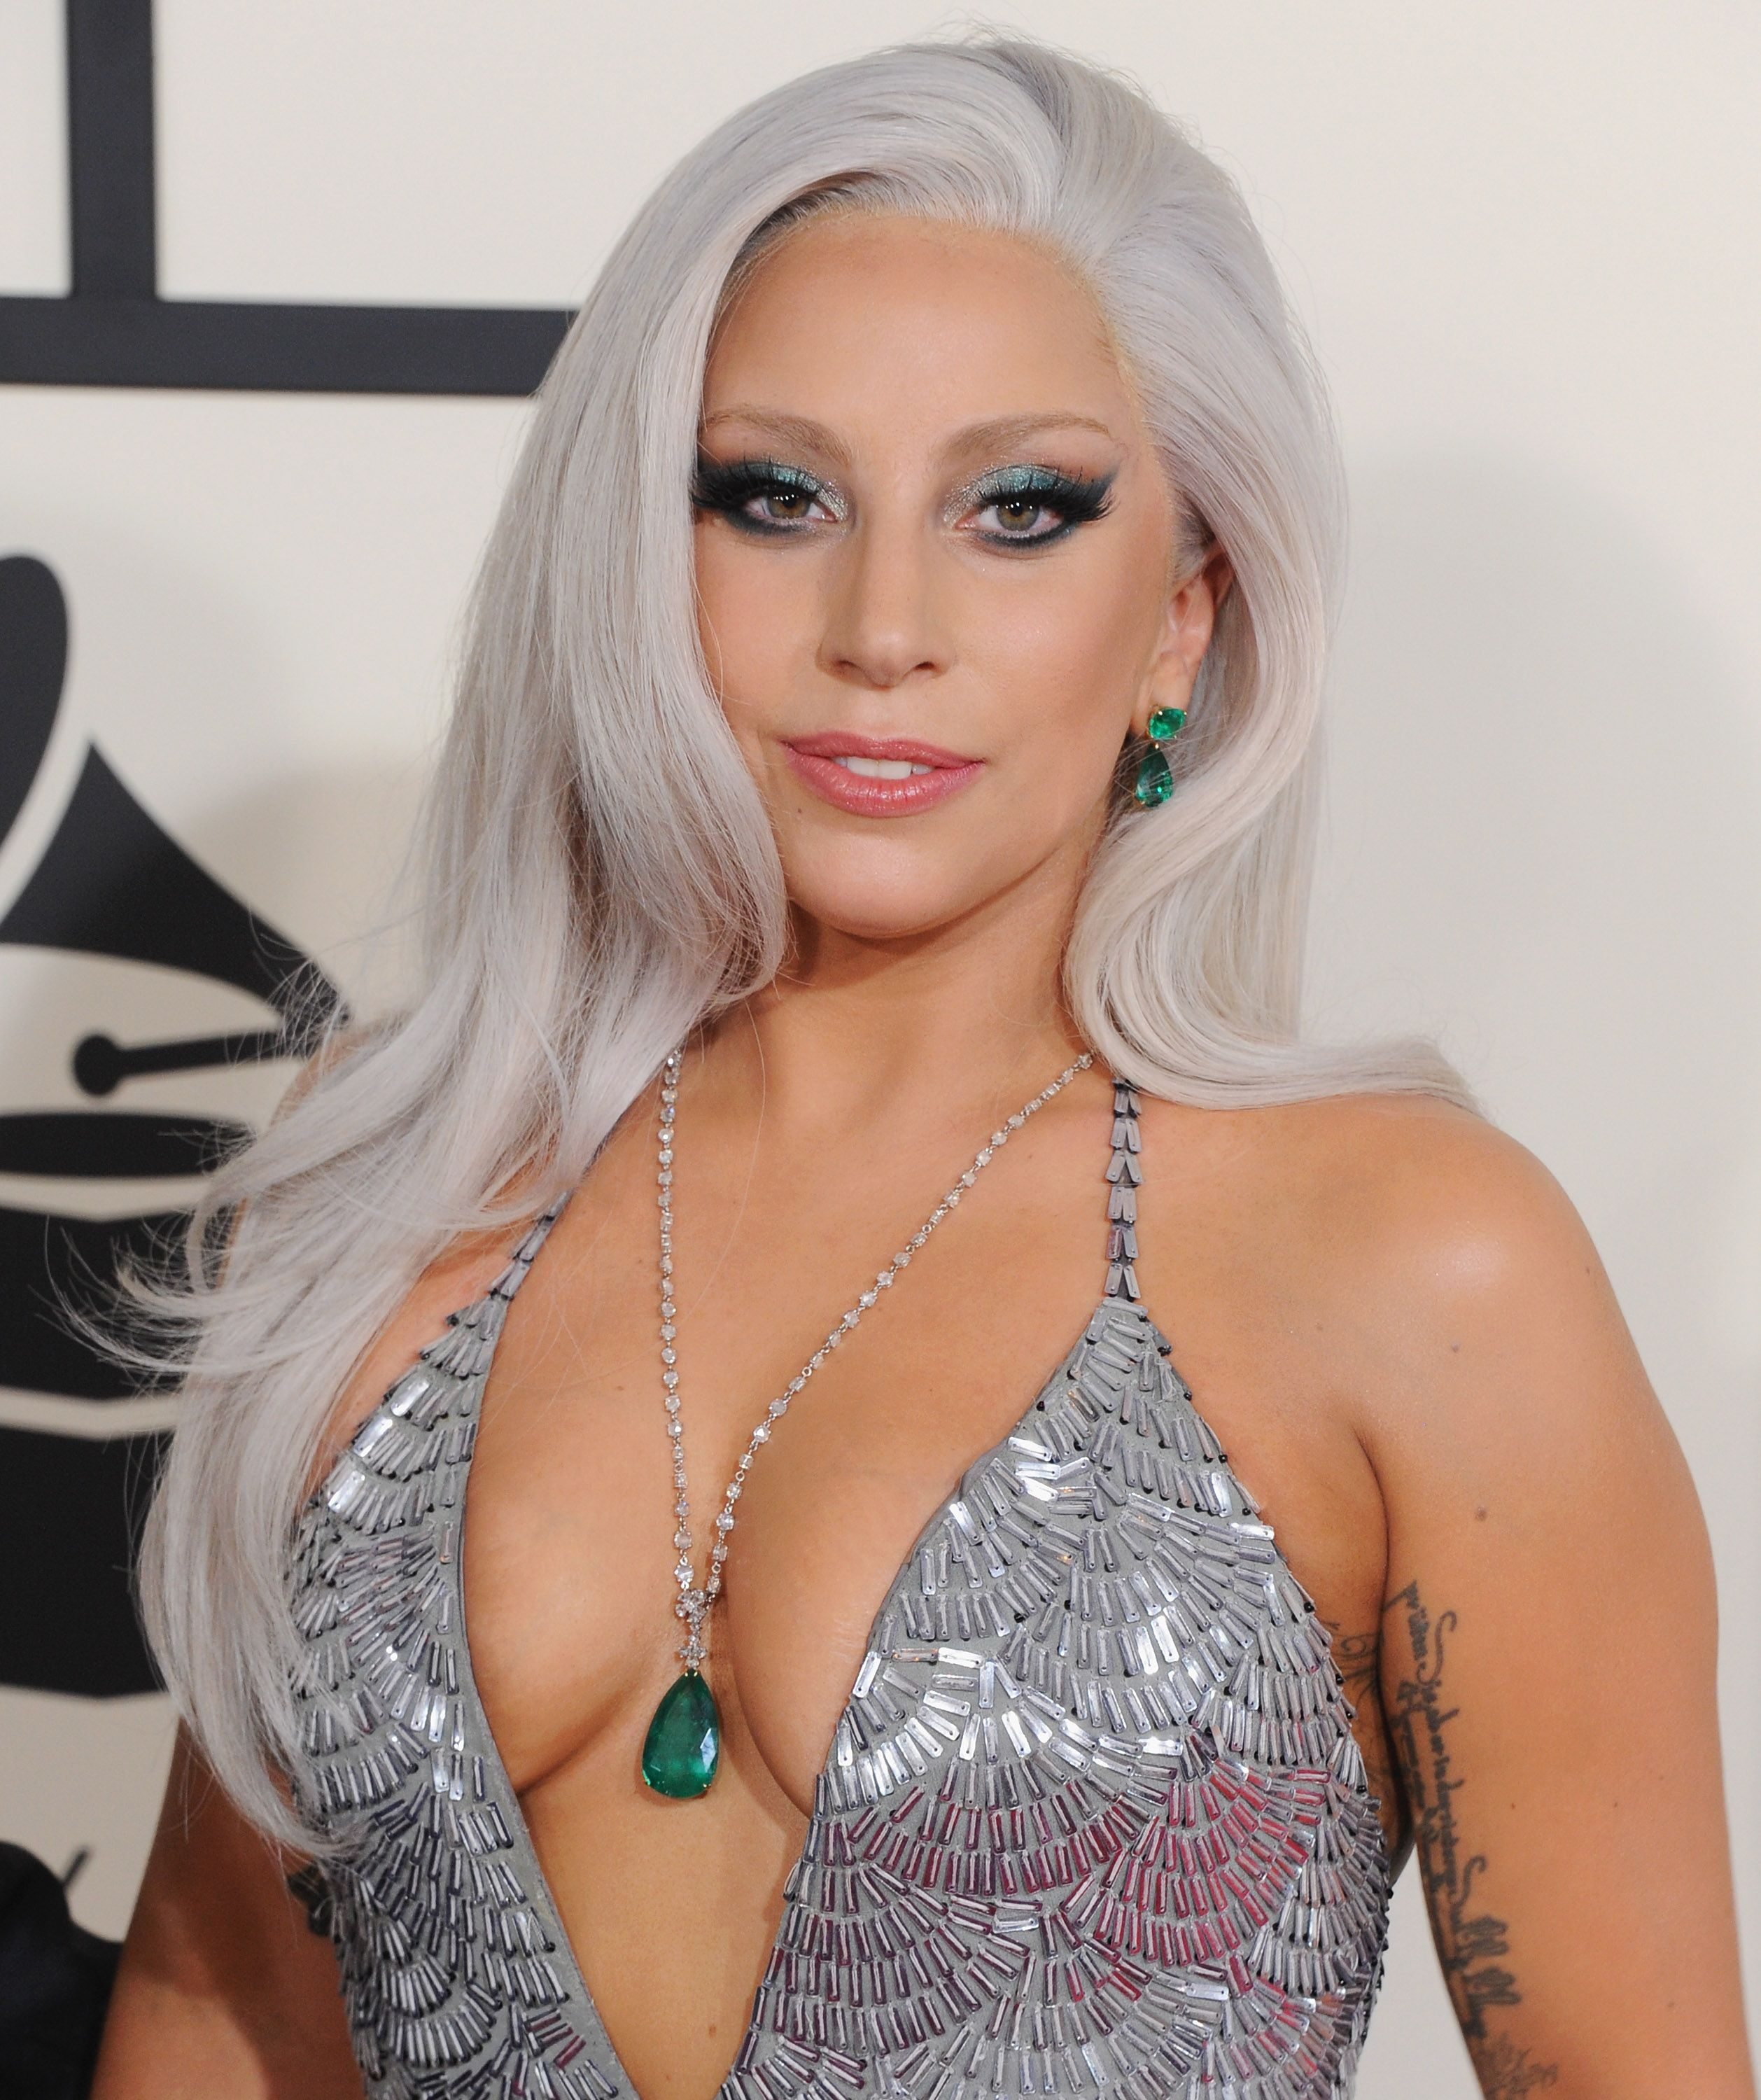 lady-gaga-gray-silver-hair-2.jpg&xguid=0